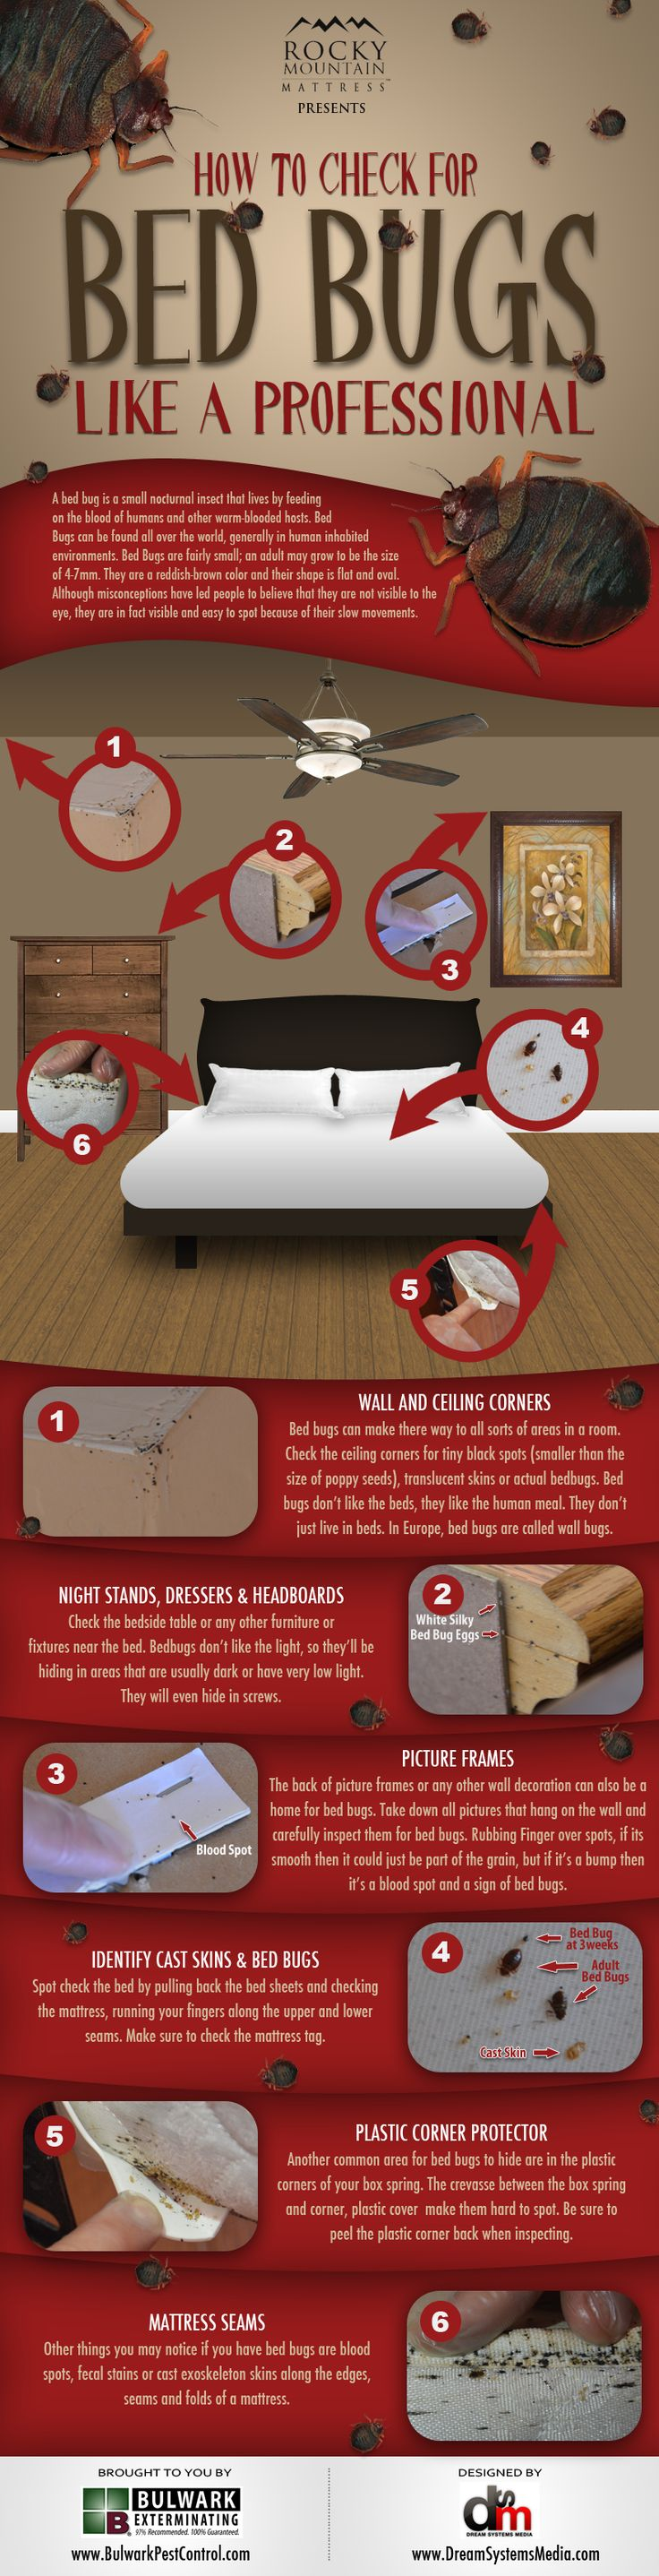 Bugs that Look Like Bed bugs and How to Identification Bed bugs